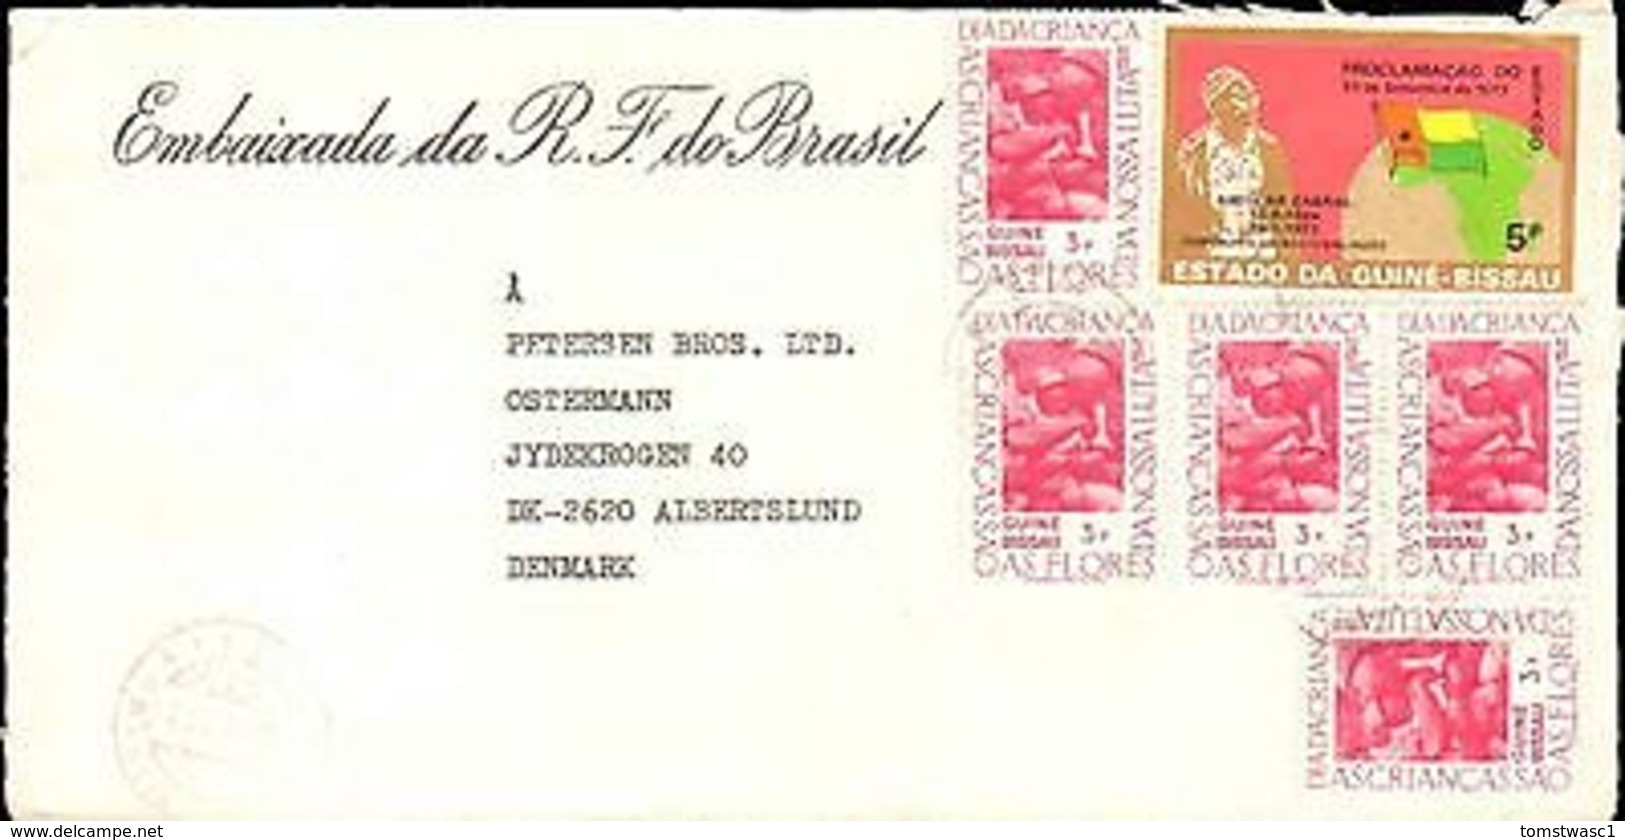 1985 GUINE-BISSAU MULTI STAMP TO DENMARK FROM BRAZIL EMBASSY - Stamps